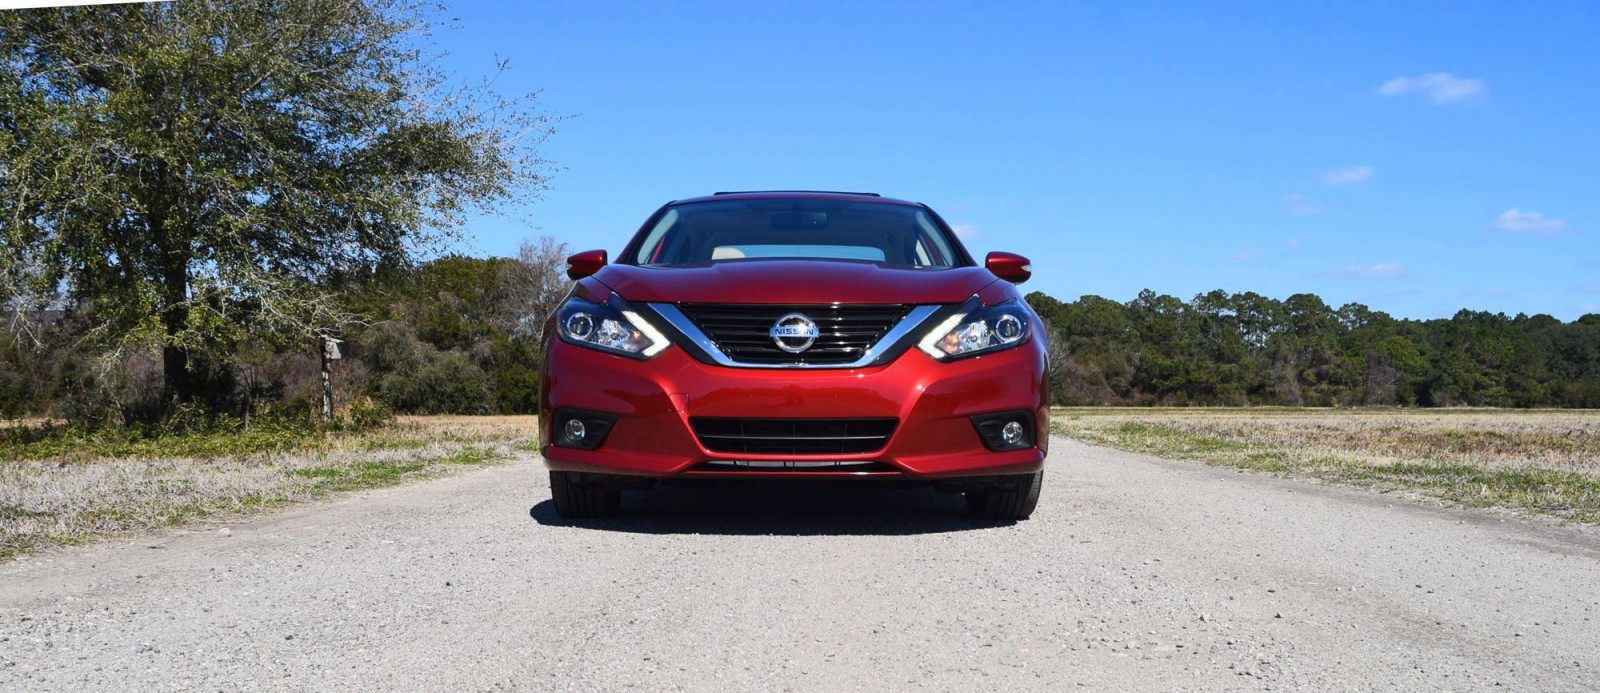 Innovative Road Test Review  2016 Nissan Altima SL  Fresh Face For